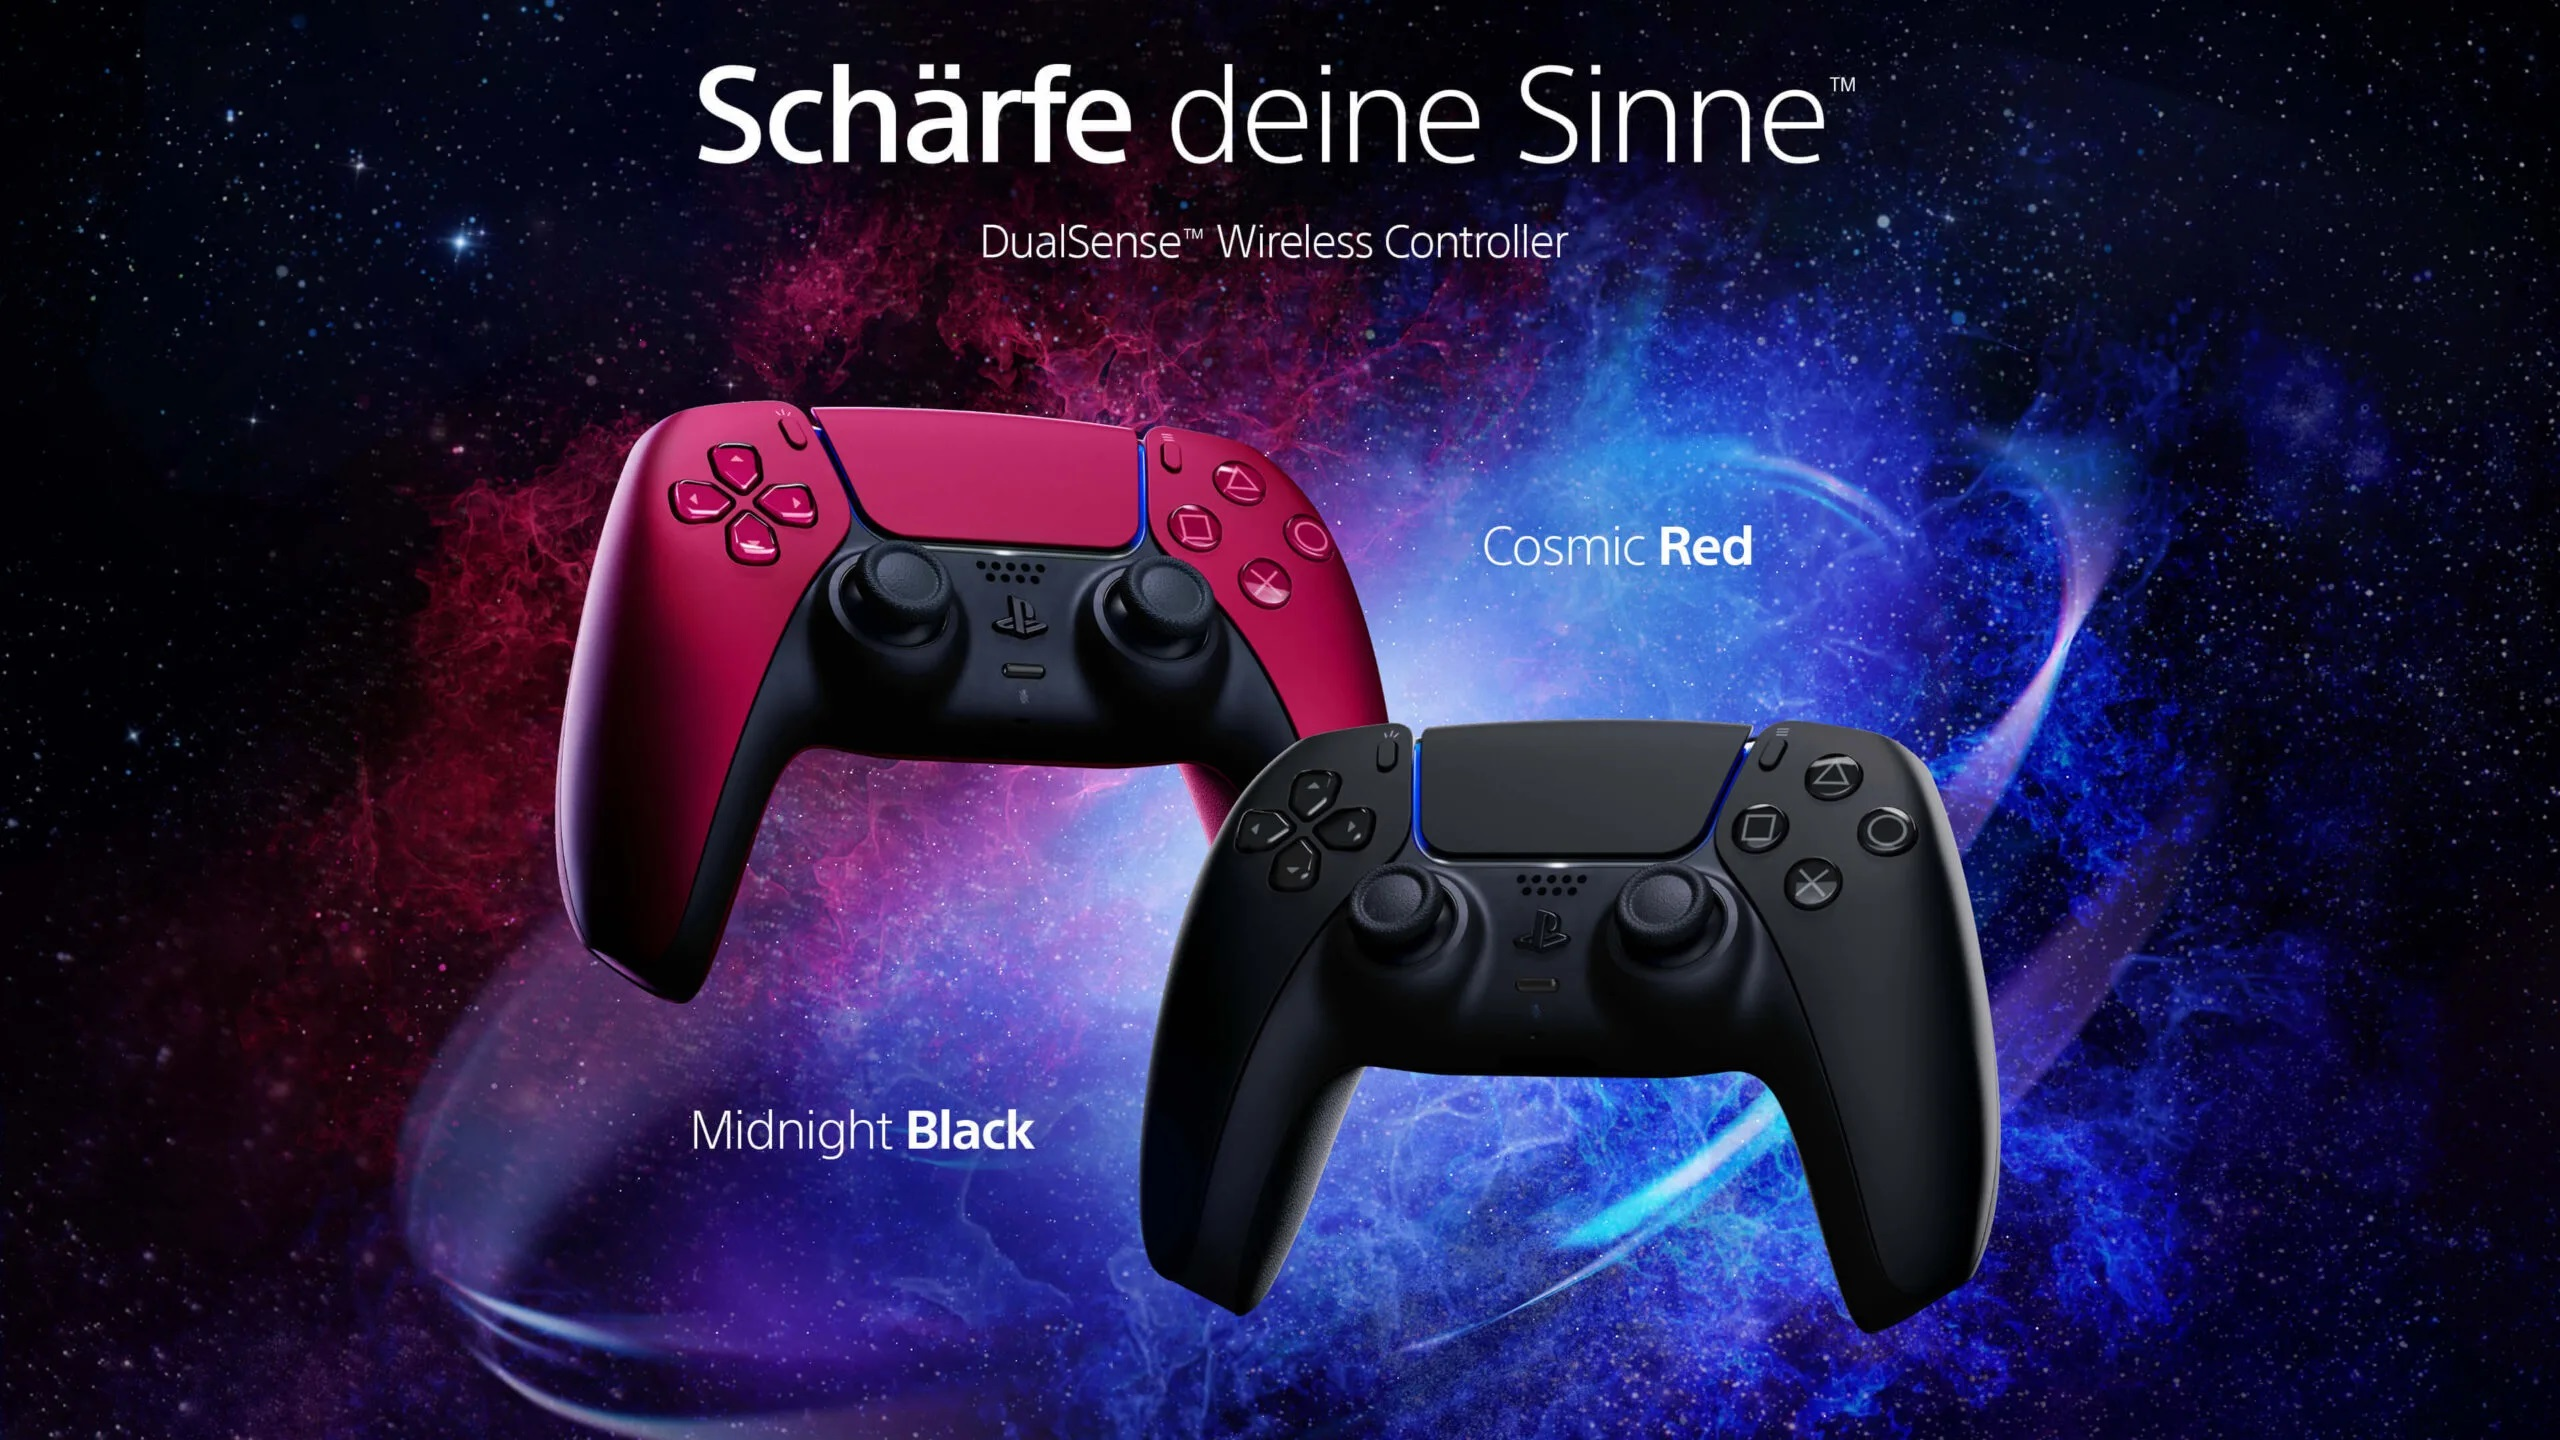 PS5: New colors announced for the DualSense controller